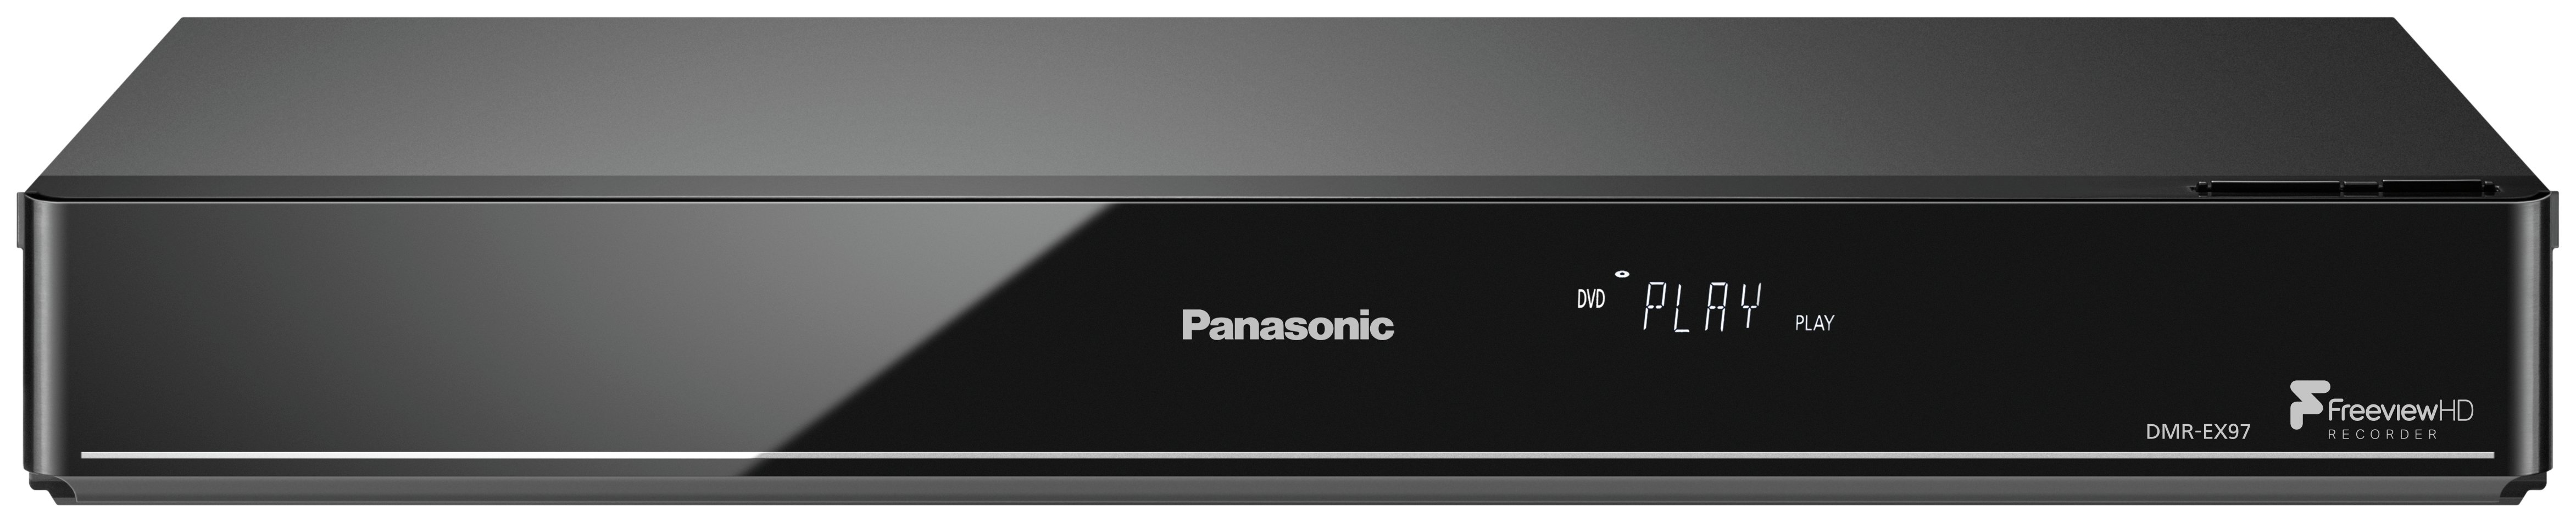 Image of Panasonic PVR and DVD Recorder 500GB DMR